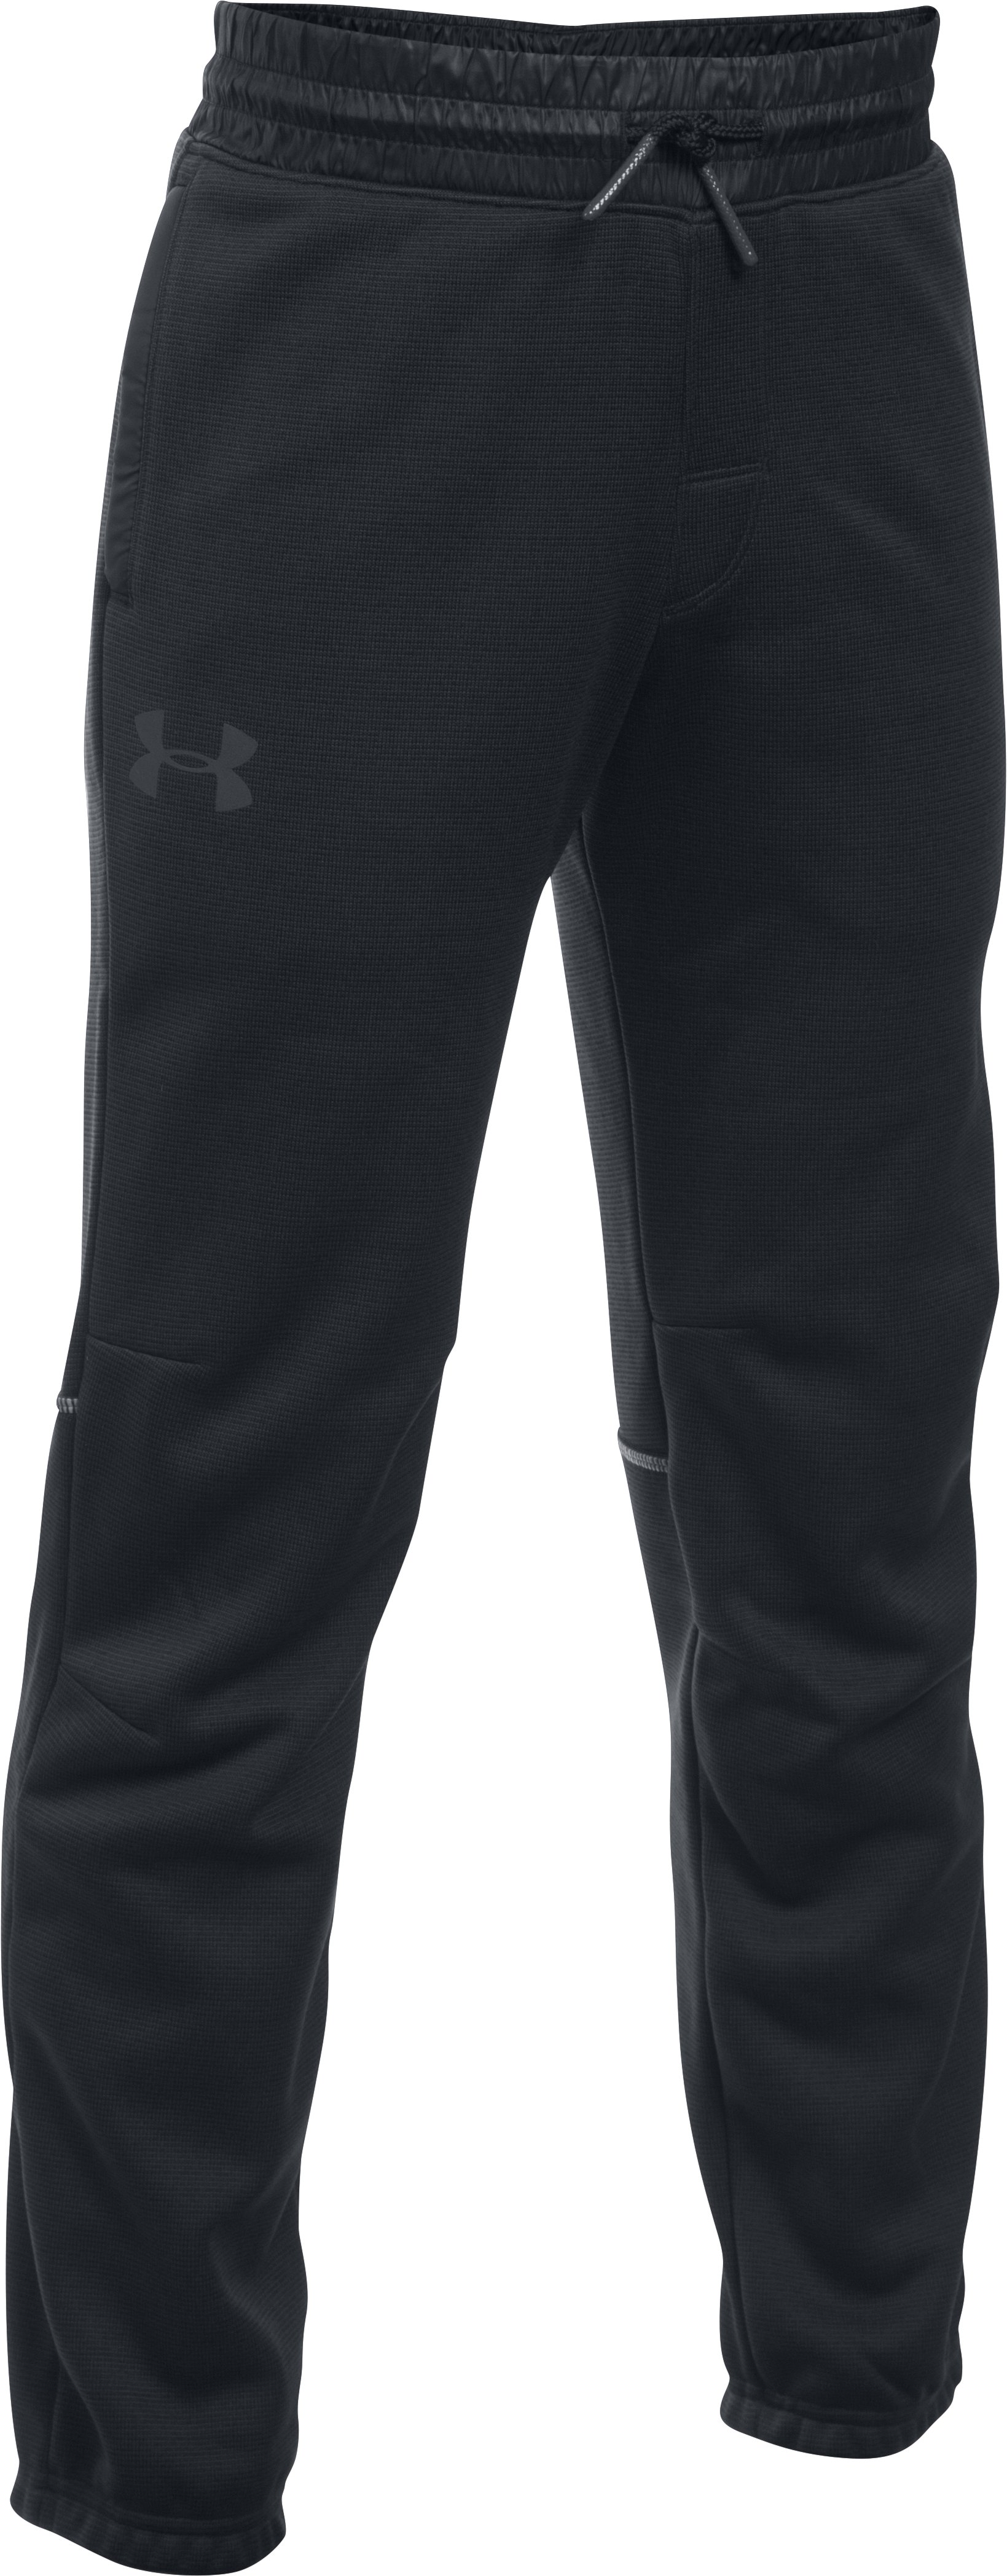 Boys' UA Swacket Pants, Black